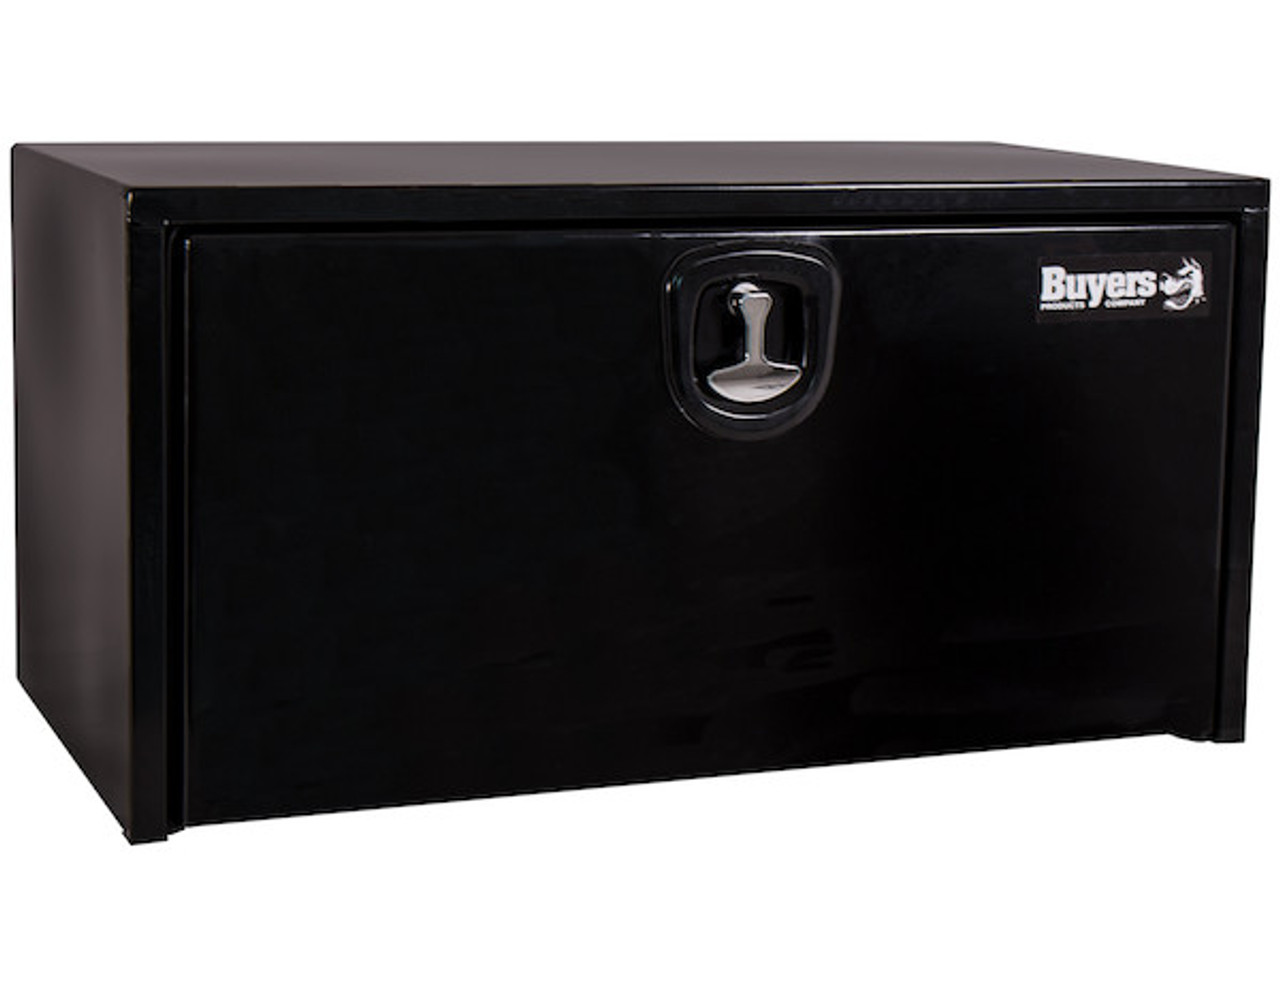 "1734300 BUYERS PRODUCTS BLACK STEEL UNDERBODY TRUCK TOOLBOX WITH 3-POINT LATCH 24""Hx24""Dx24""W"